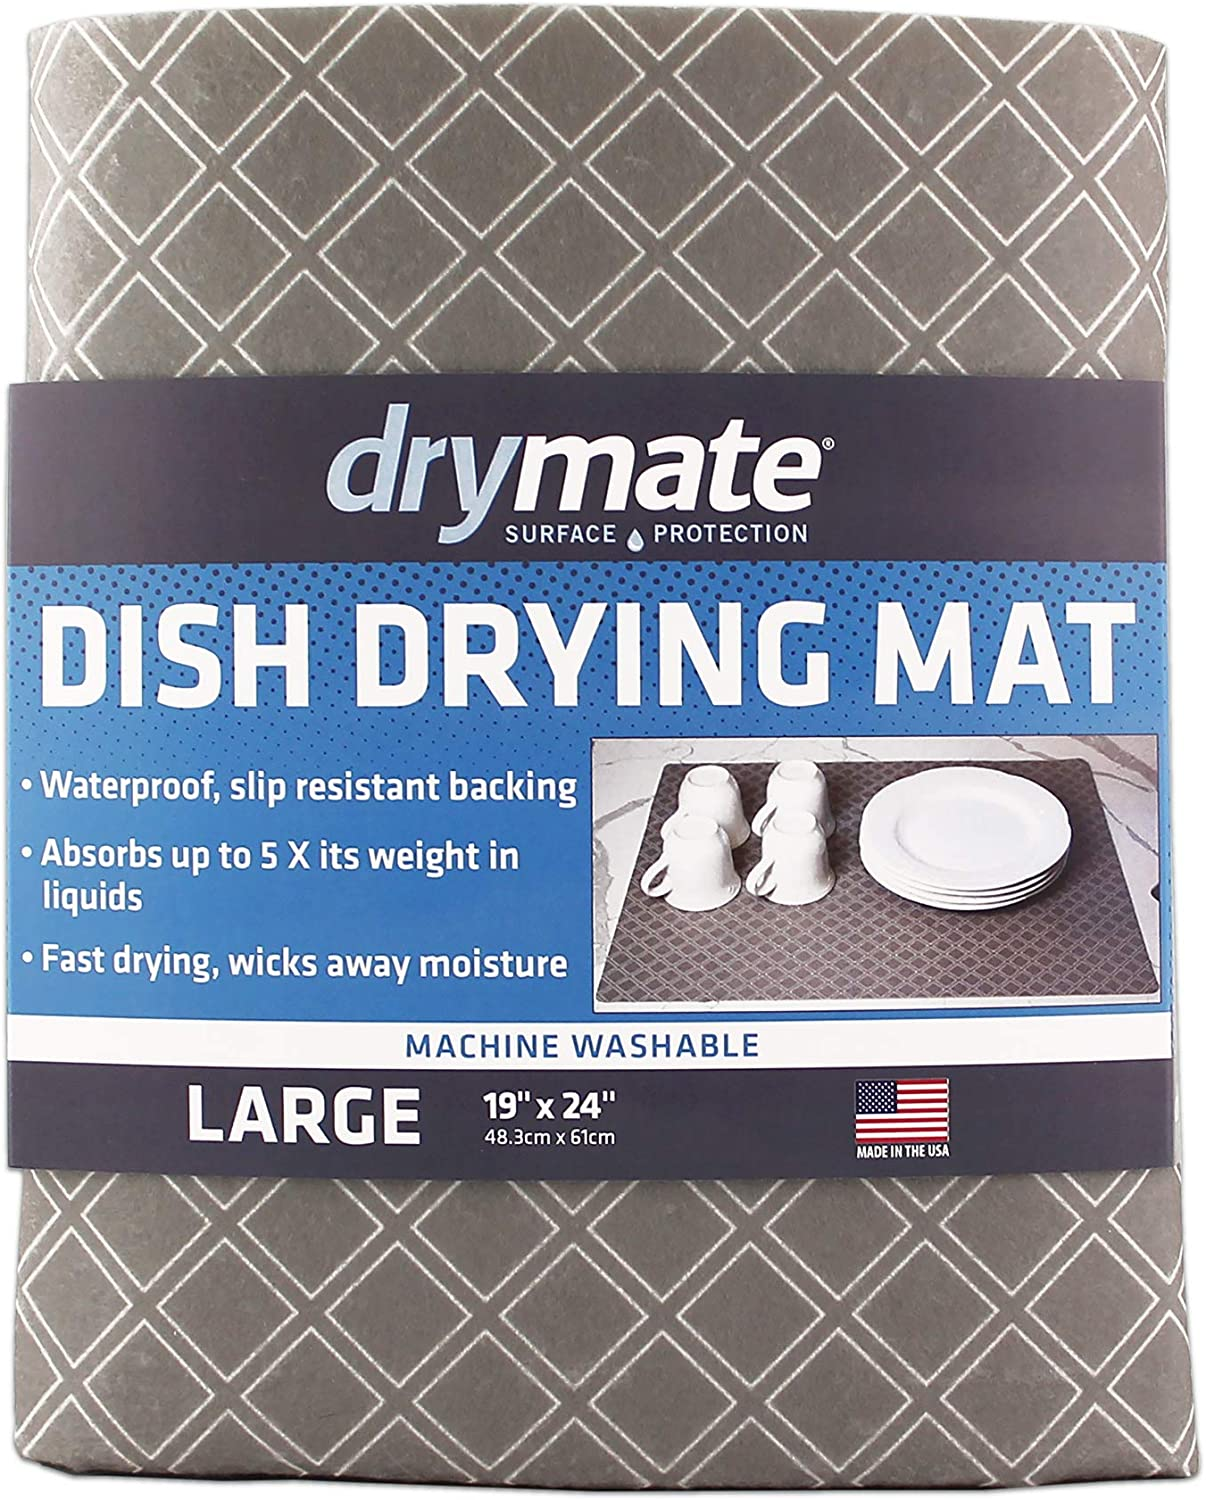 "Drymate Dish Drying Mat, Premium XL Size (19"" x 24""), Kitchen Dish Drying Pad – Absorbent/Waterproof – Machine Washable (Made in the USA) (Taupe Diamond Squares)"